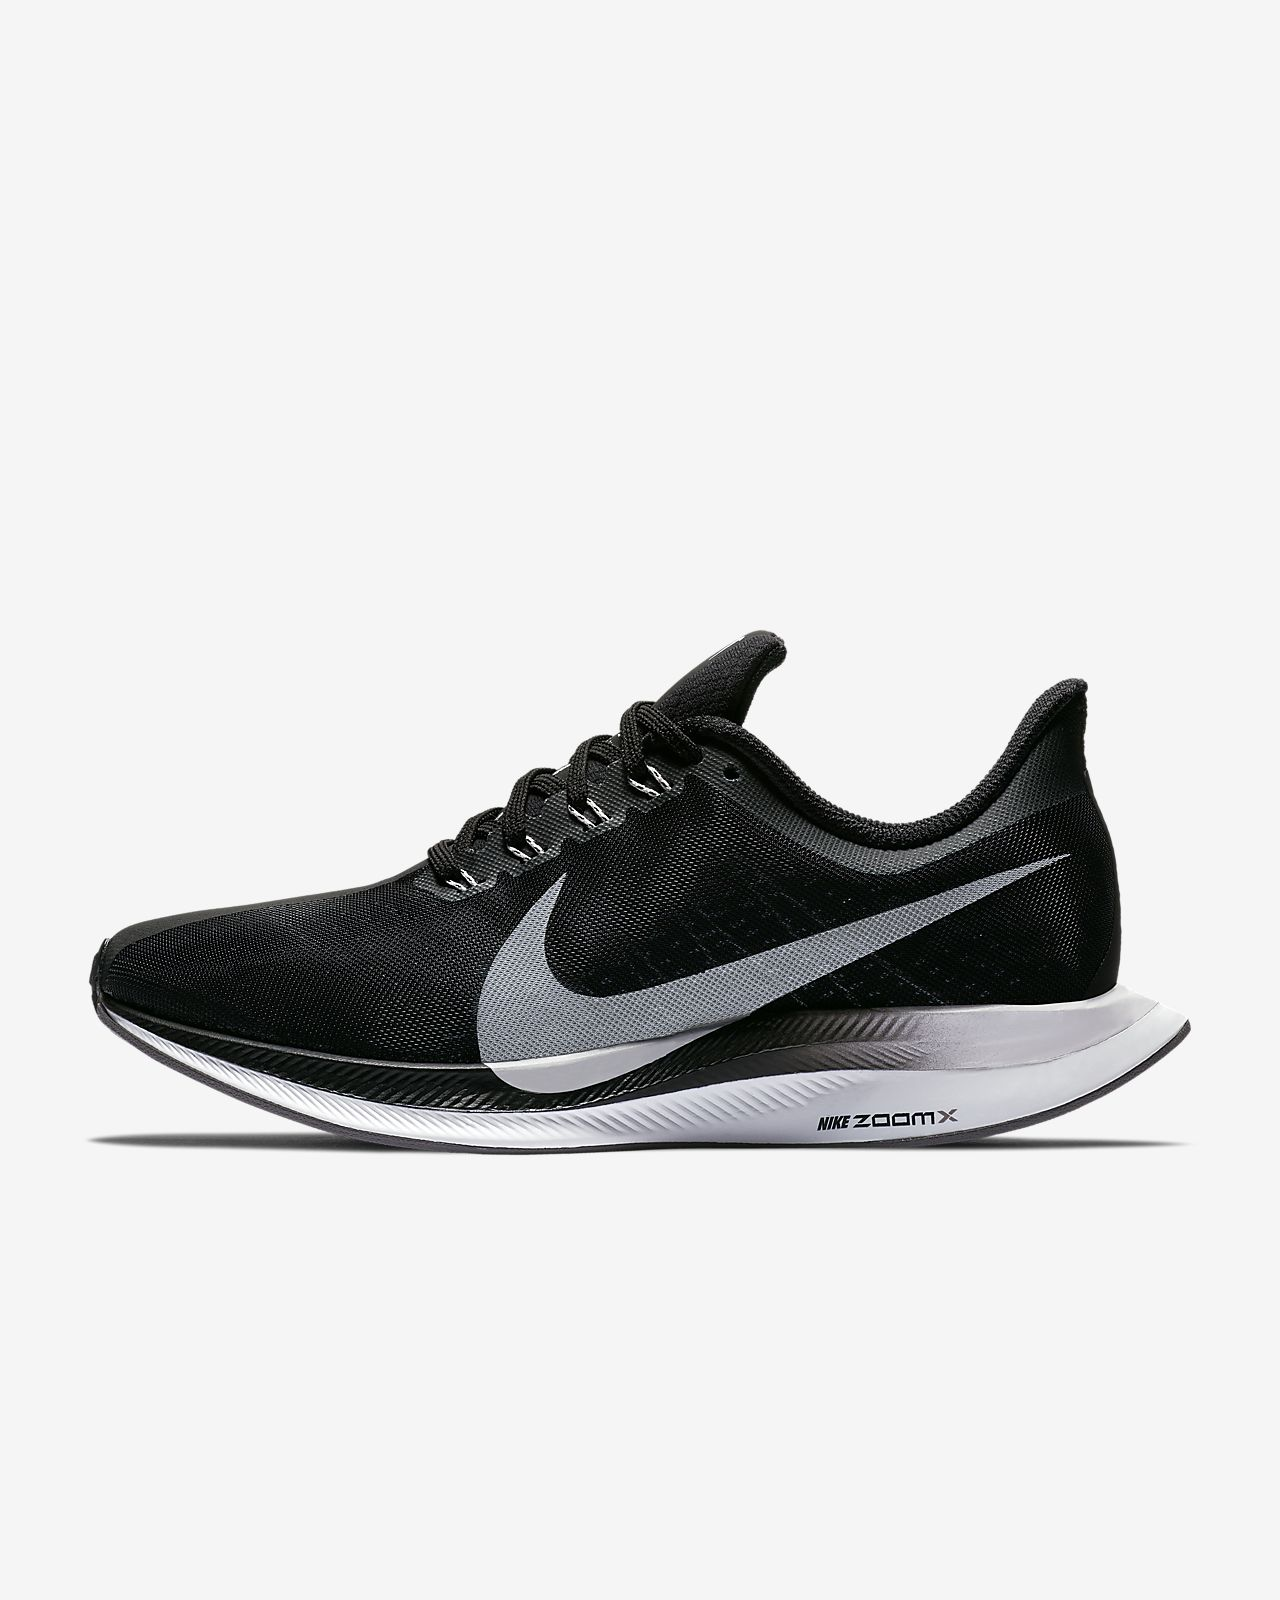 88299aa63075 Nike Zoom Pegasus Turbo Women s Running Shoe. Nike.com GB